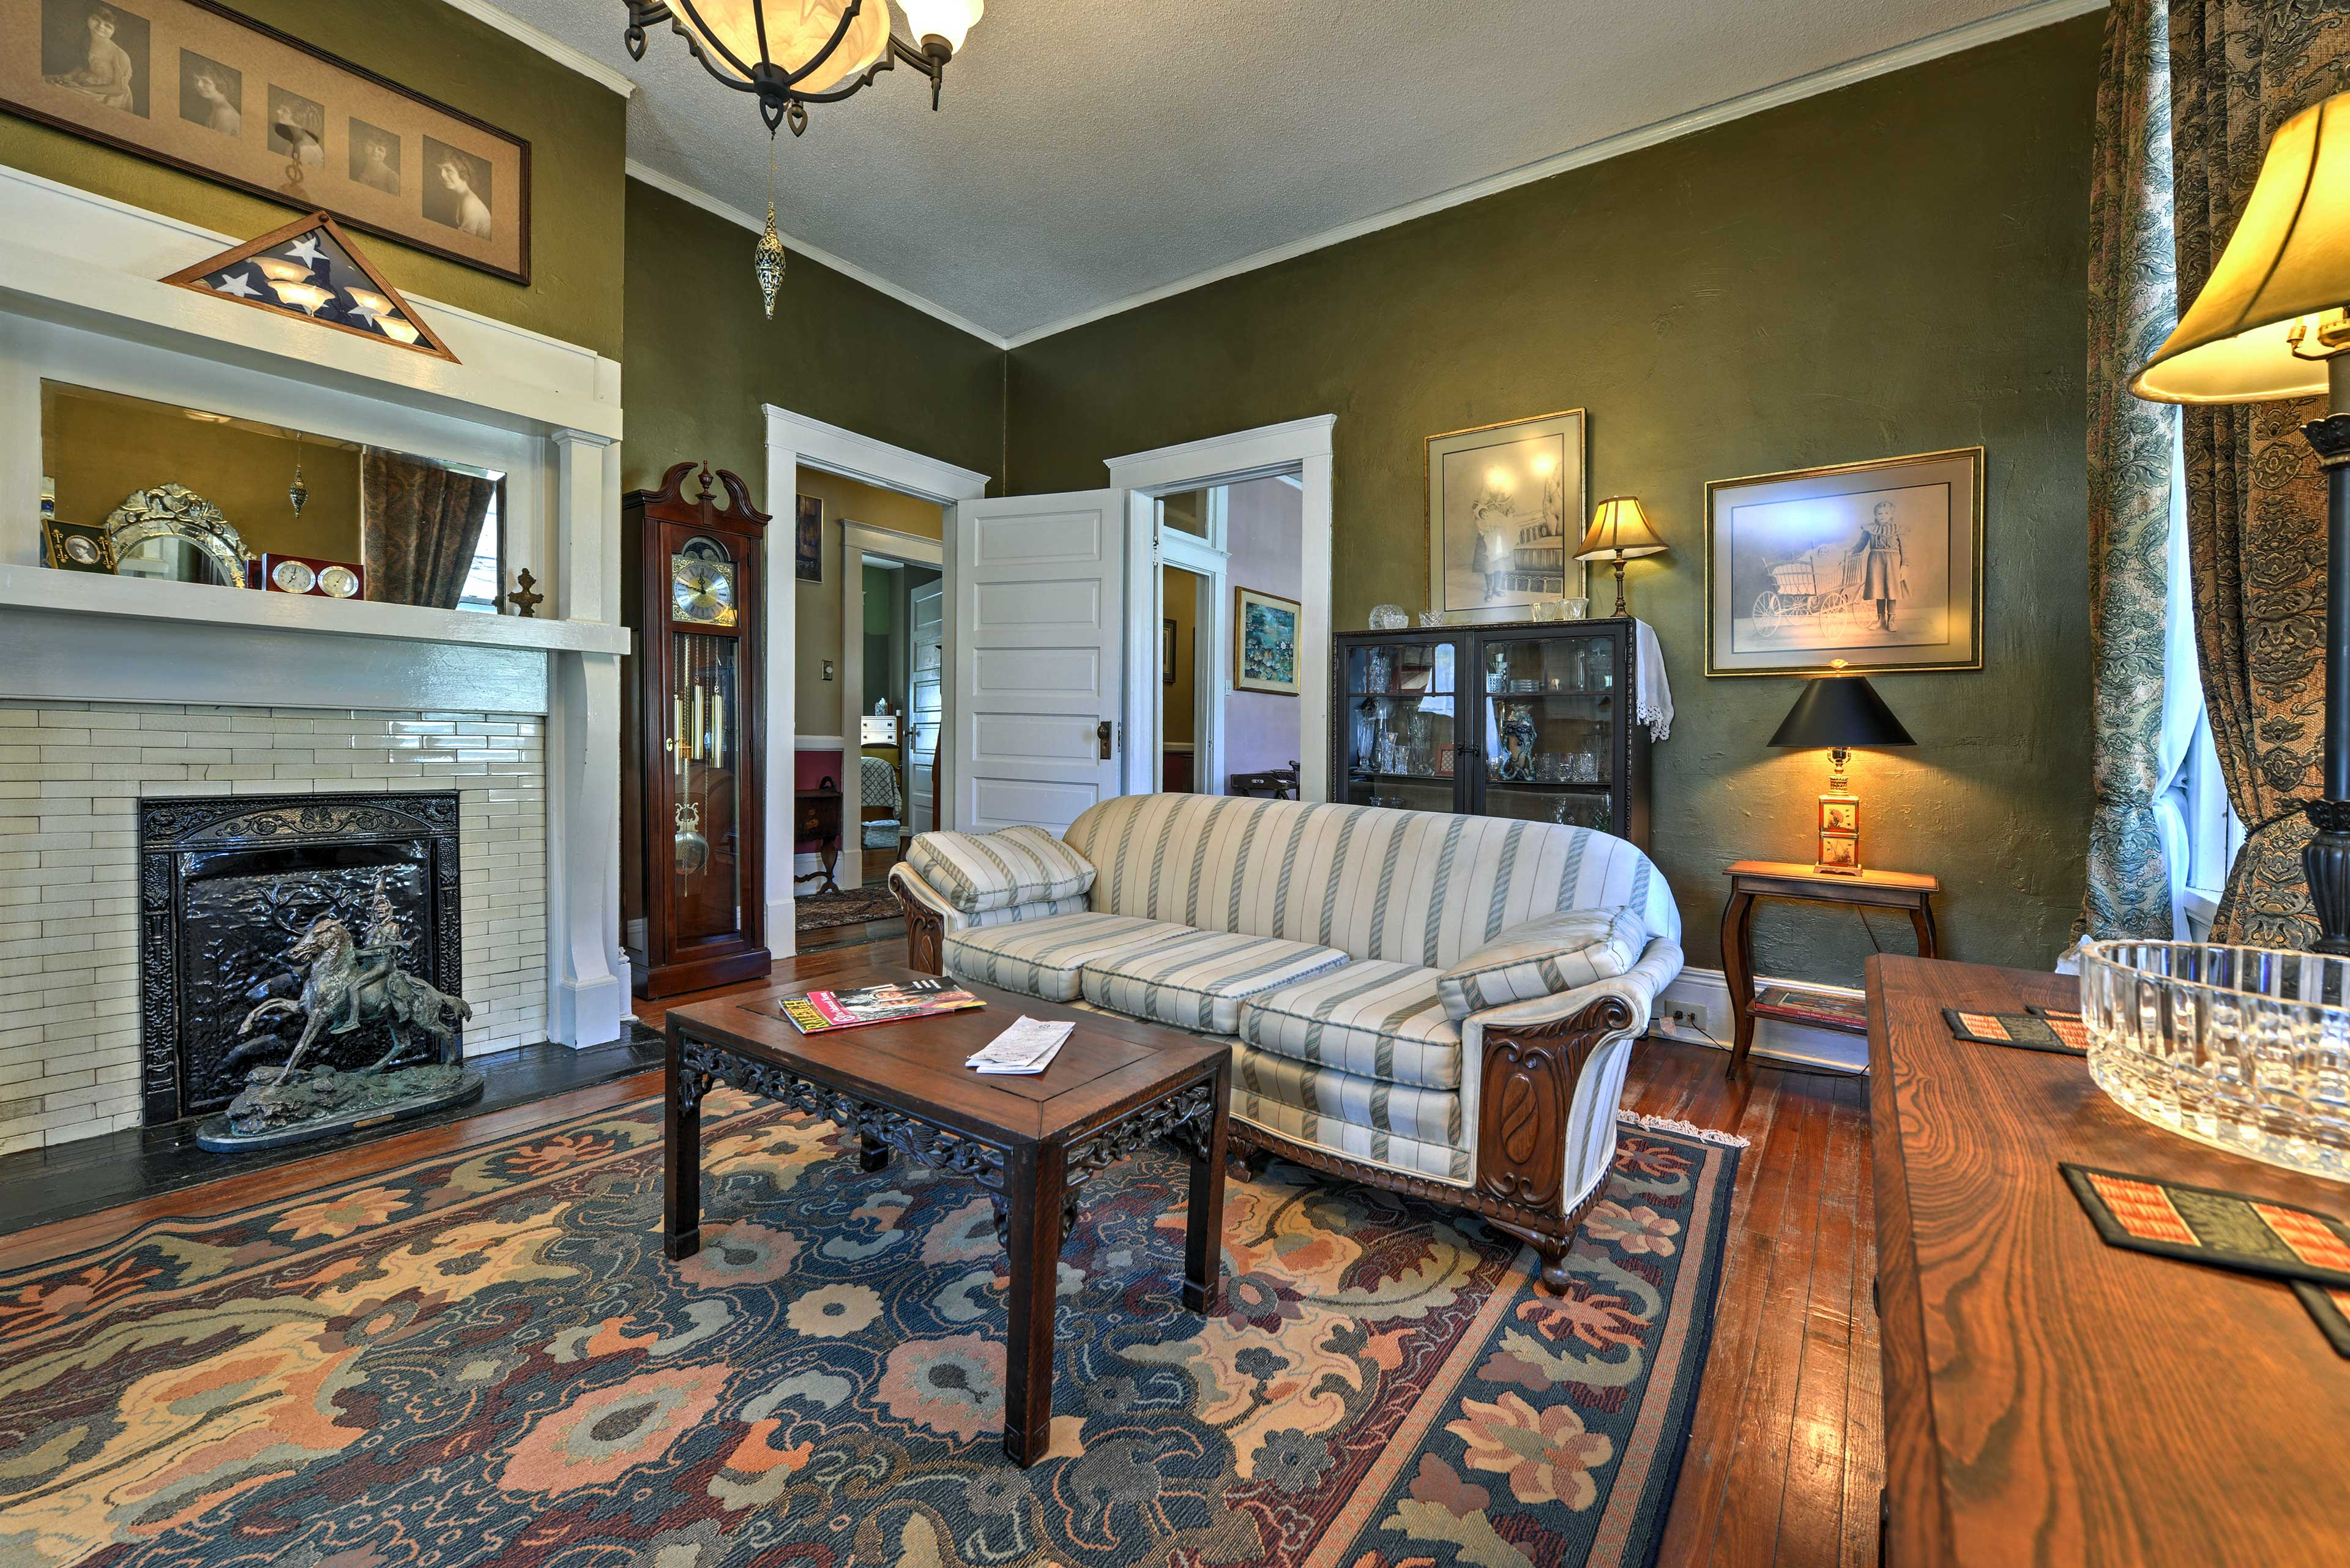 Built in 1904, this apartment boasts tons of historic charm.